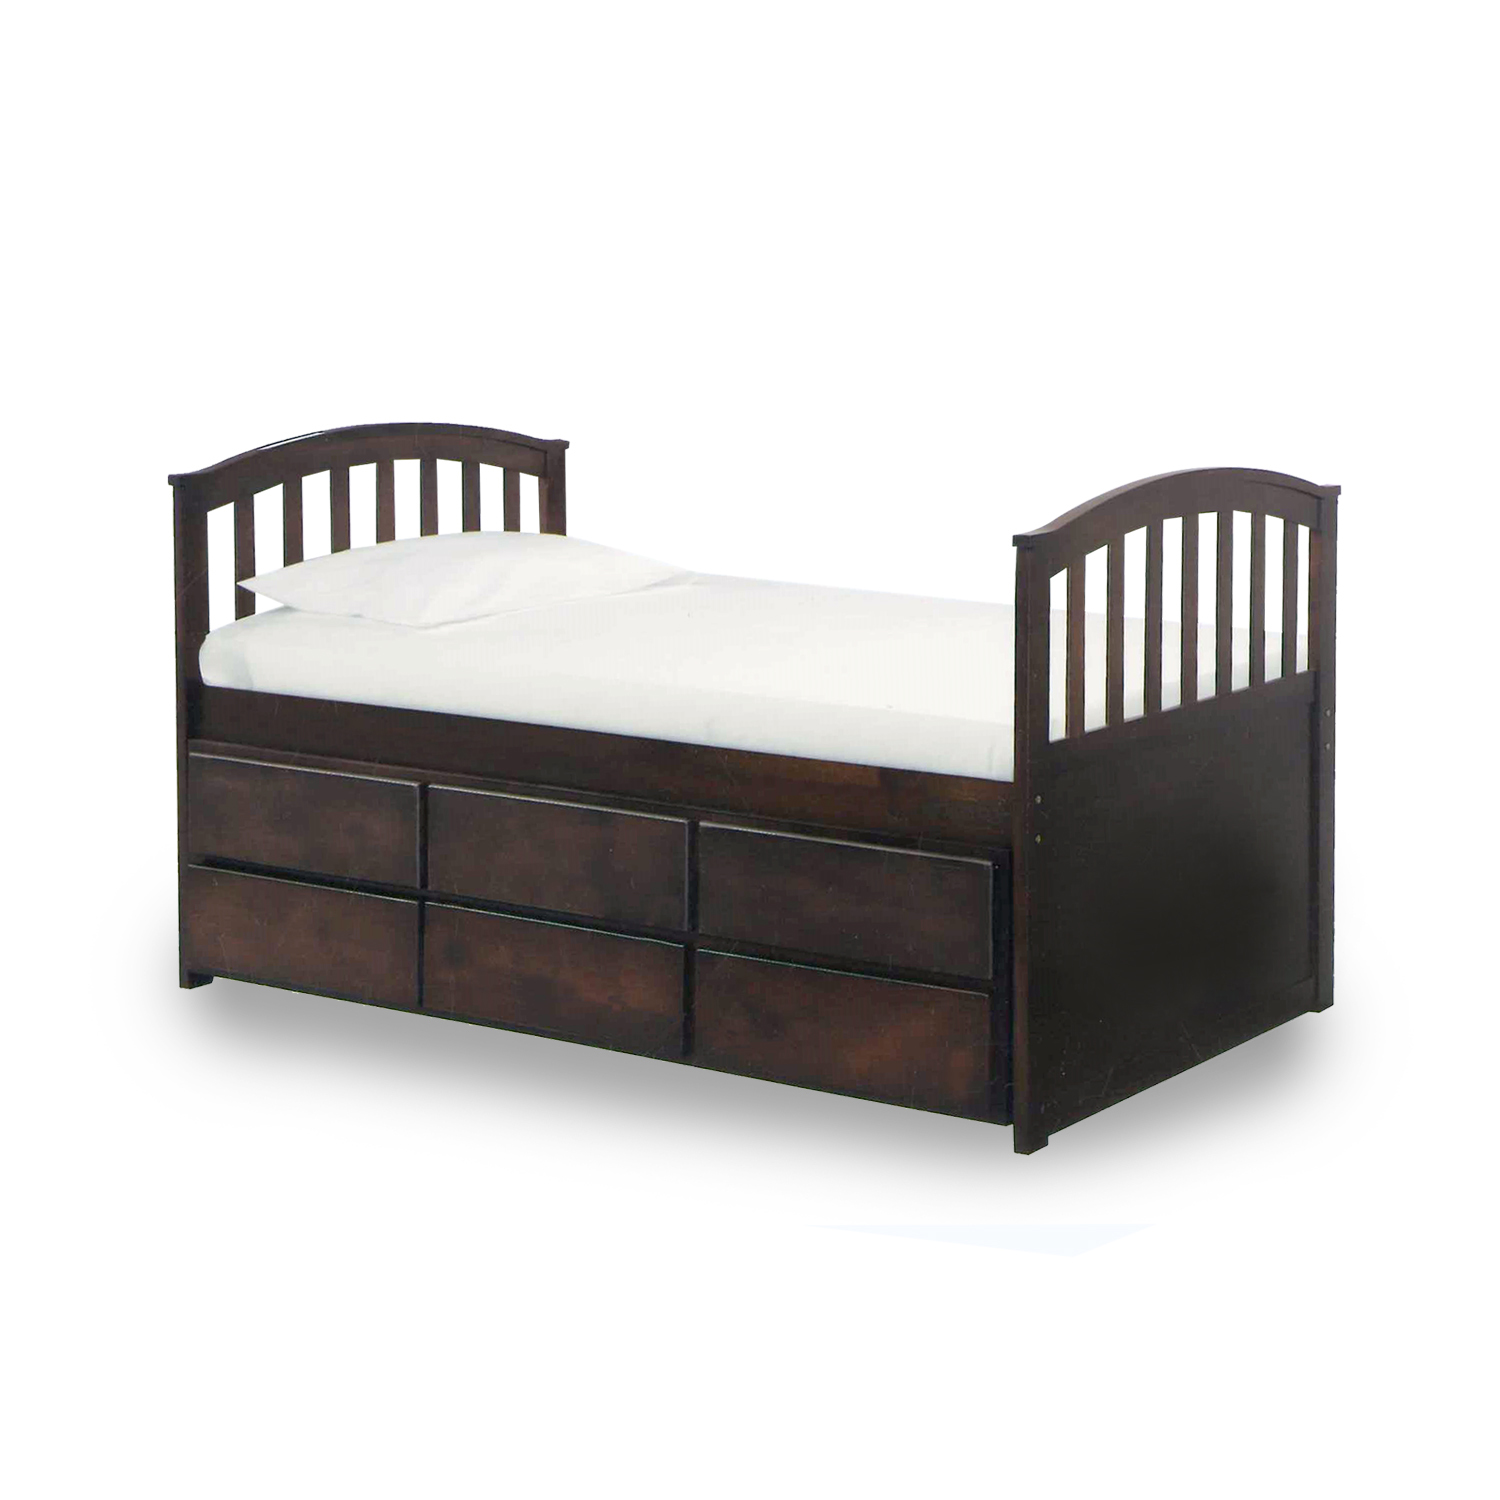 captain bed CB A 001 wenge.jpg